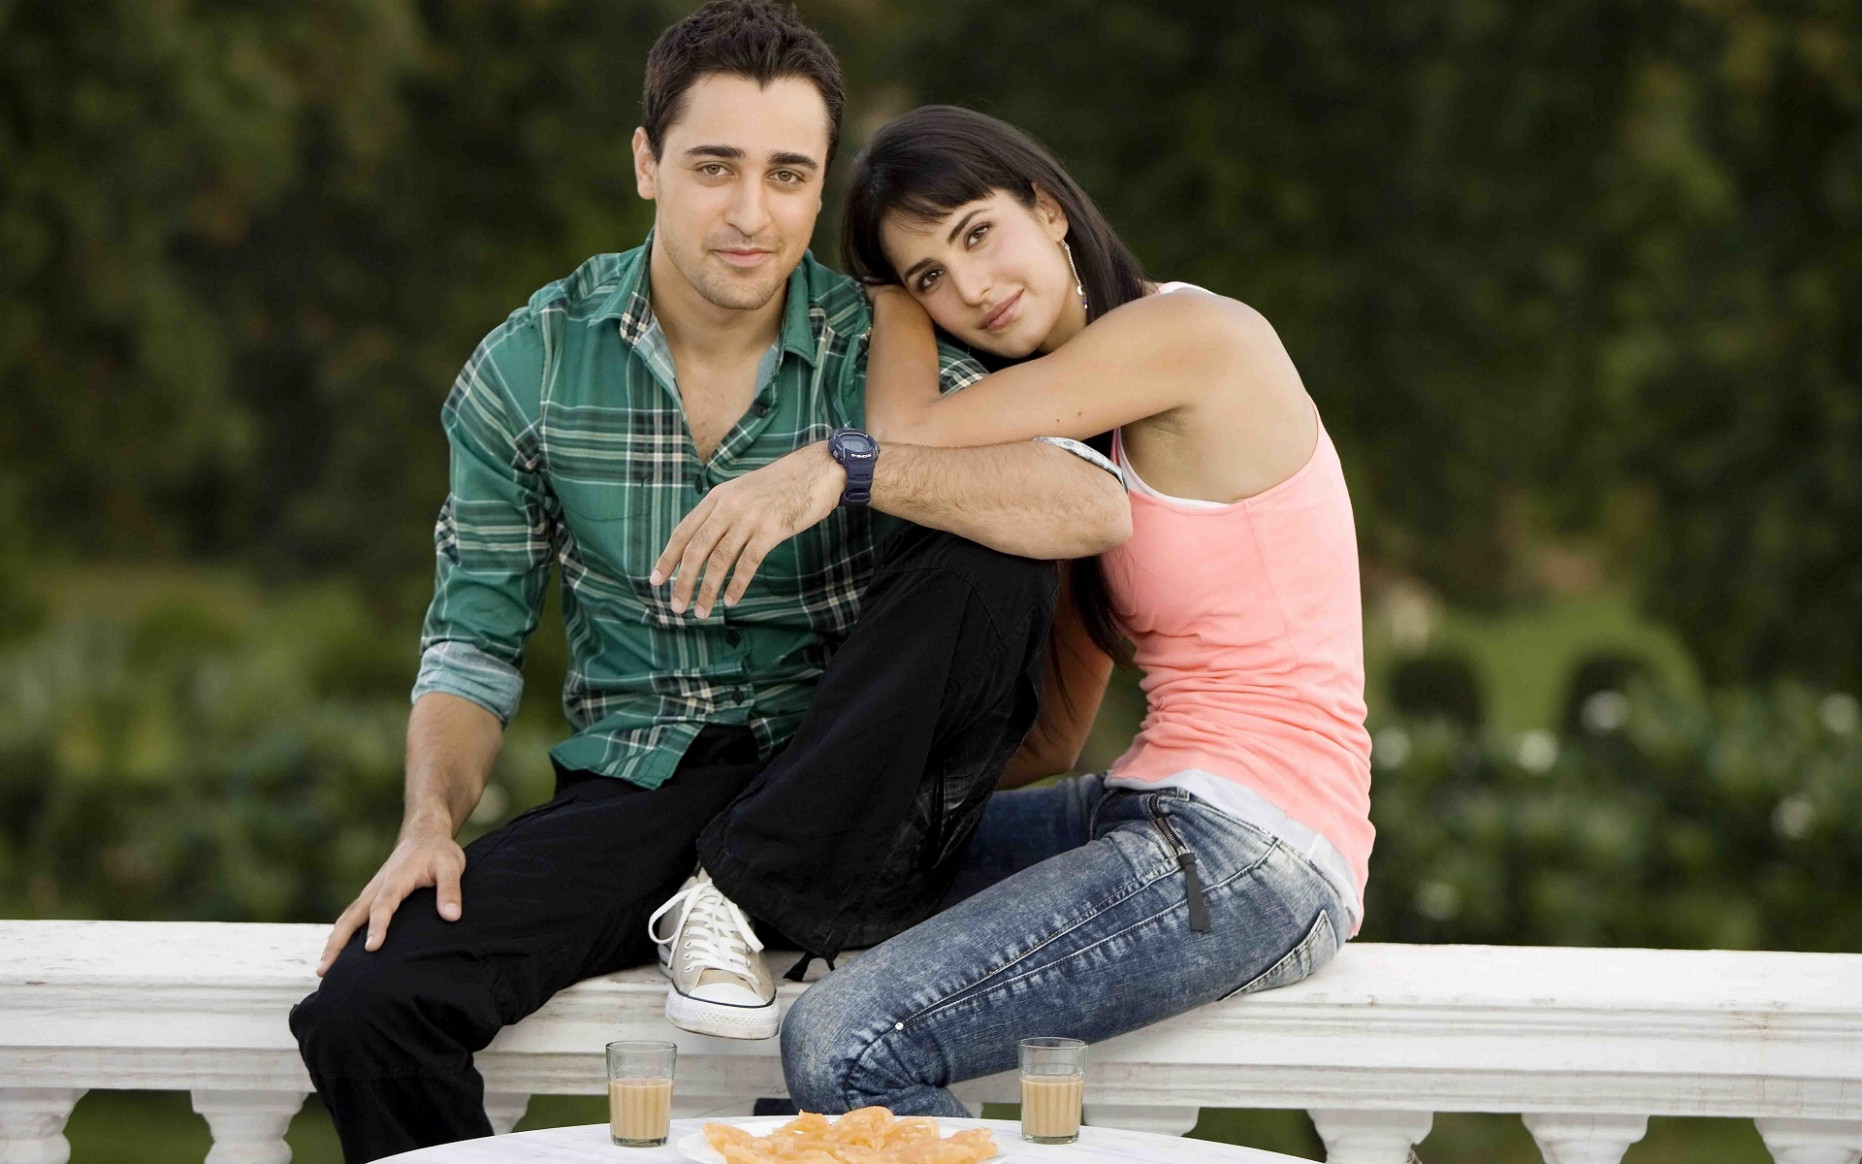 Bollywood romantic couple - New hd wallpaperNew hd wallpaper